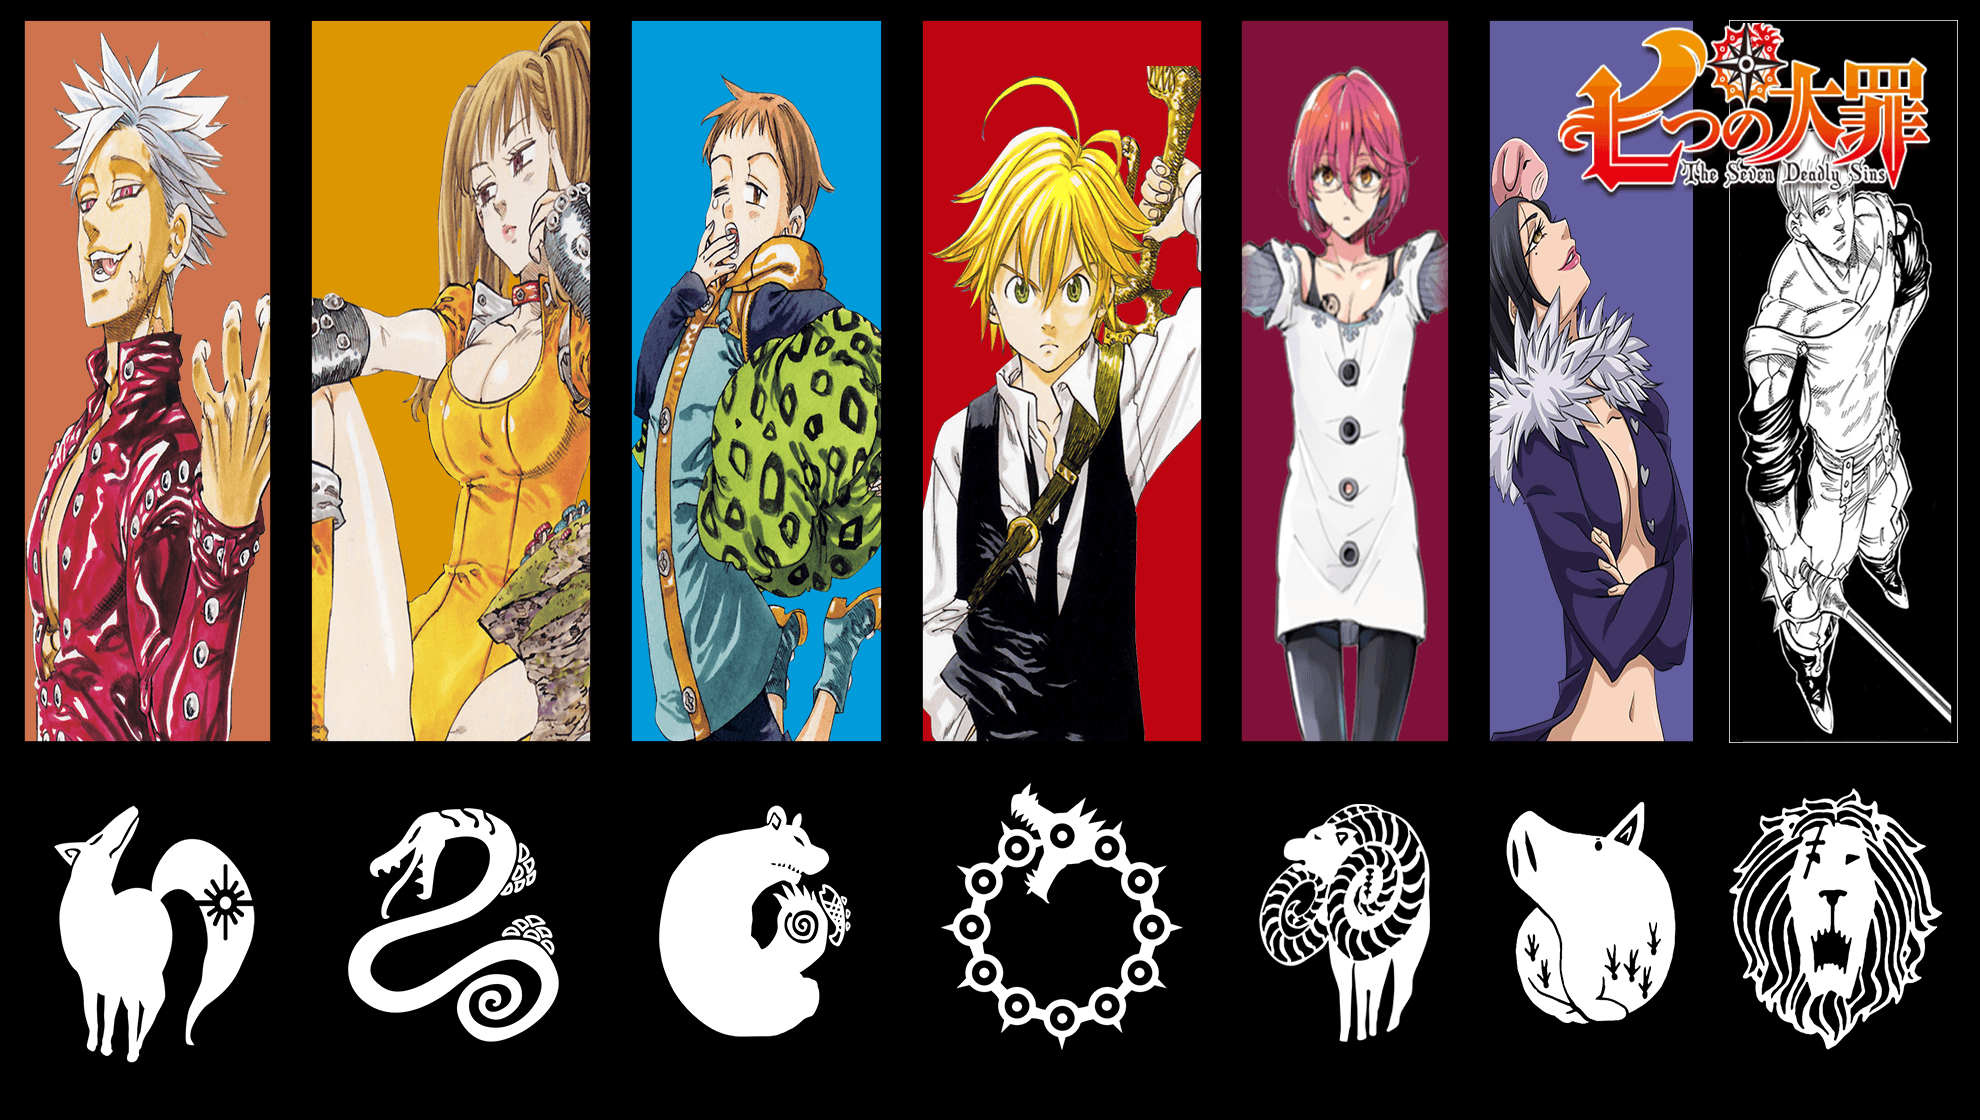 7 Deadly Sins Wallpapers